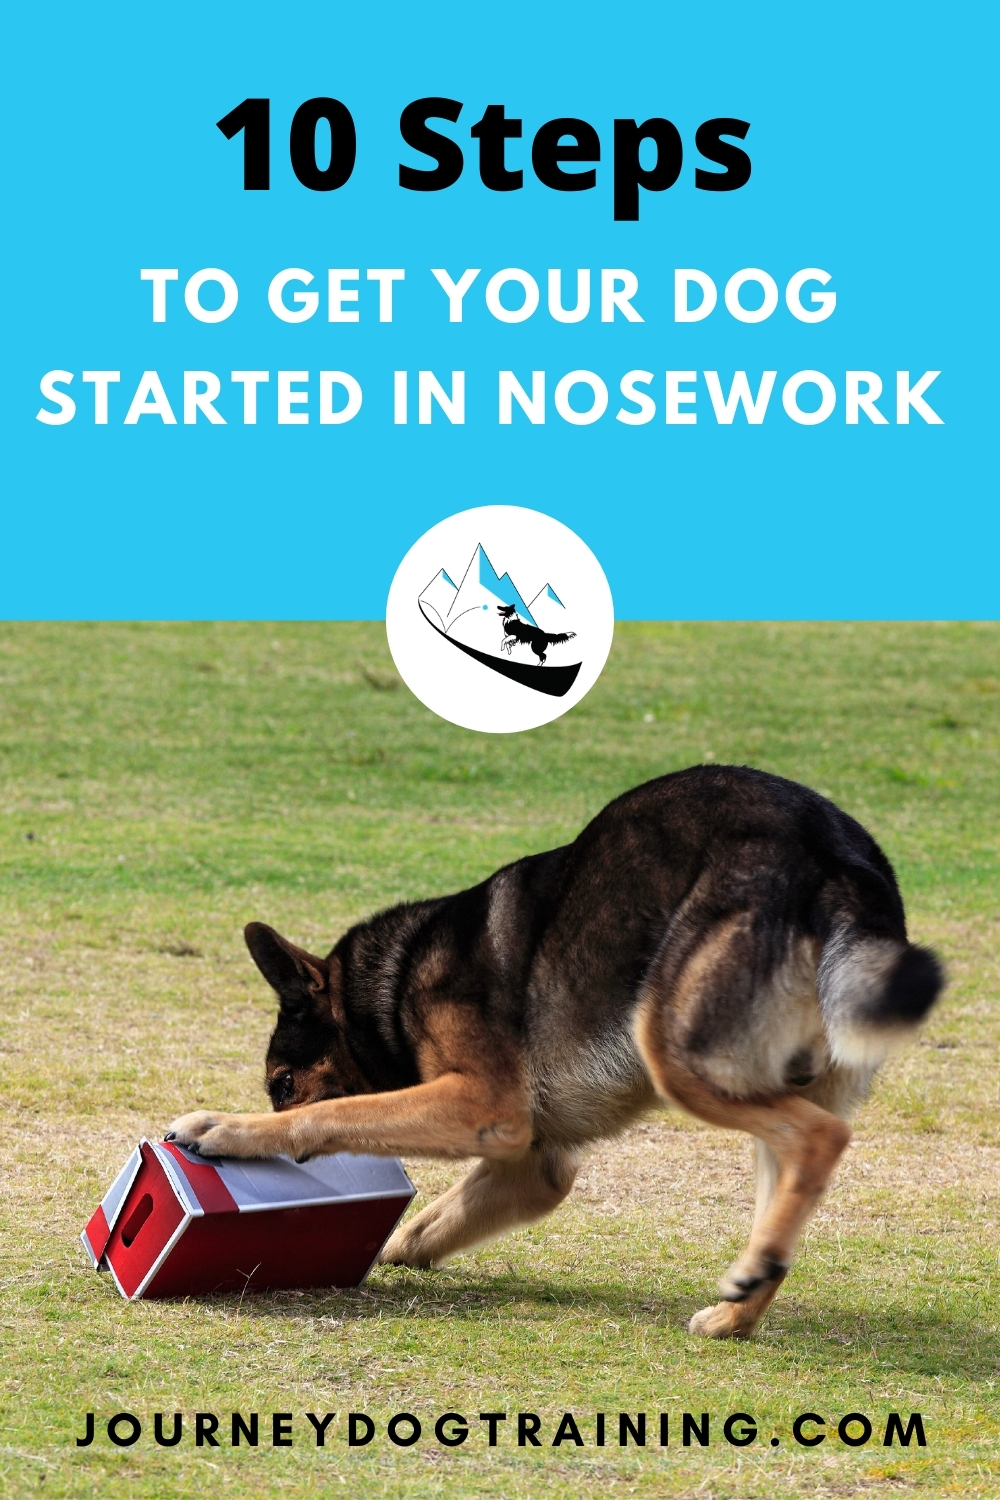 10 steps to get your dog started in nosework | journeydogtraining.com